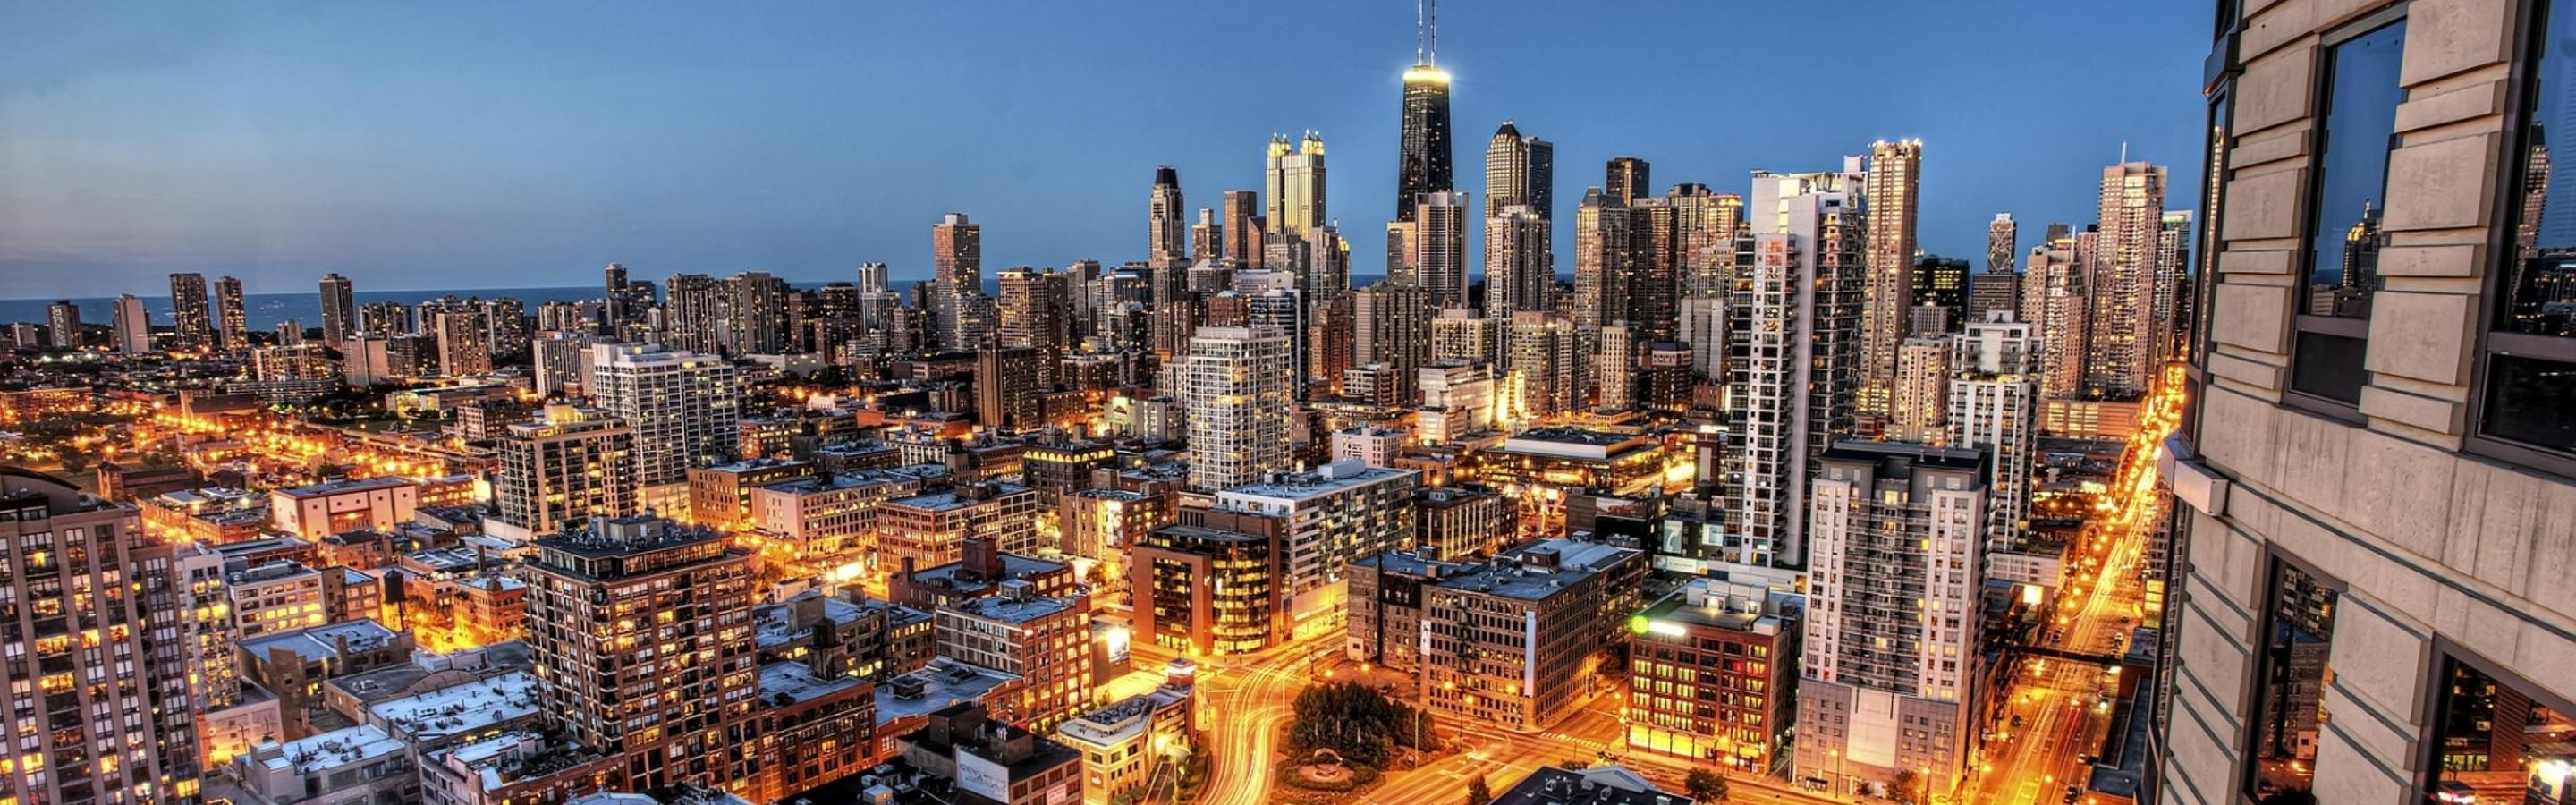 Wonderful Wallpaper Macbook Chicago - chicago-city-lighted-roads-in-night-2880x900  Pic_45430.jpg